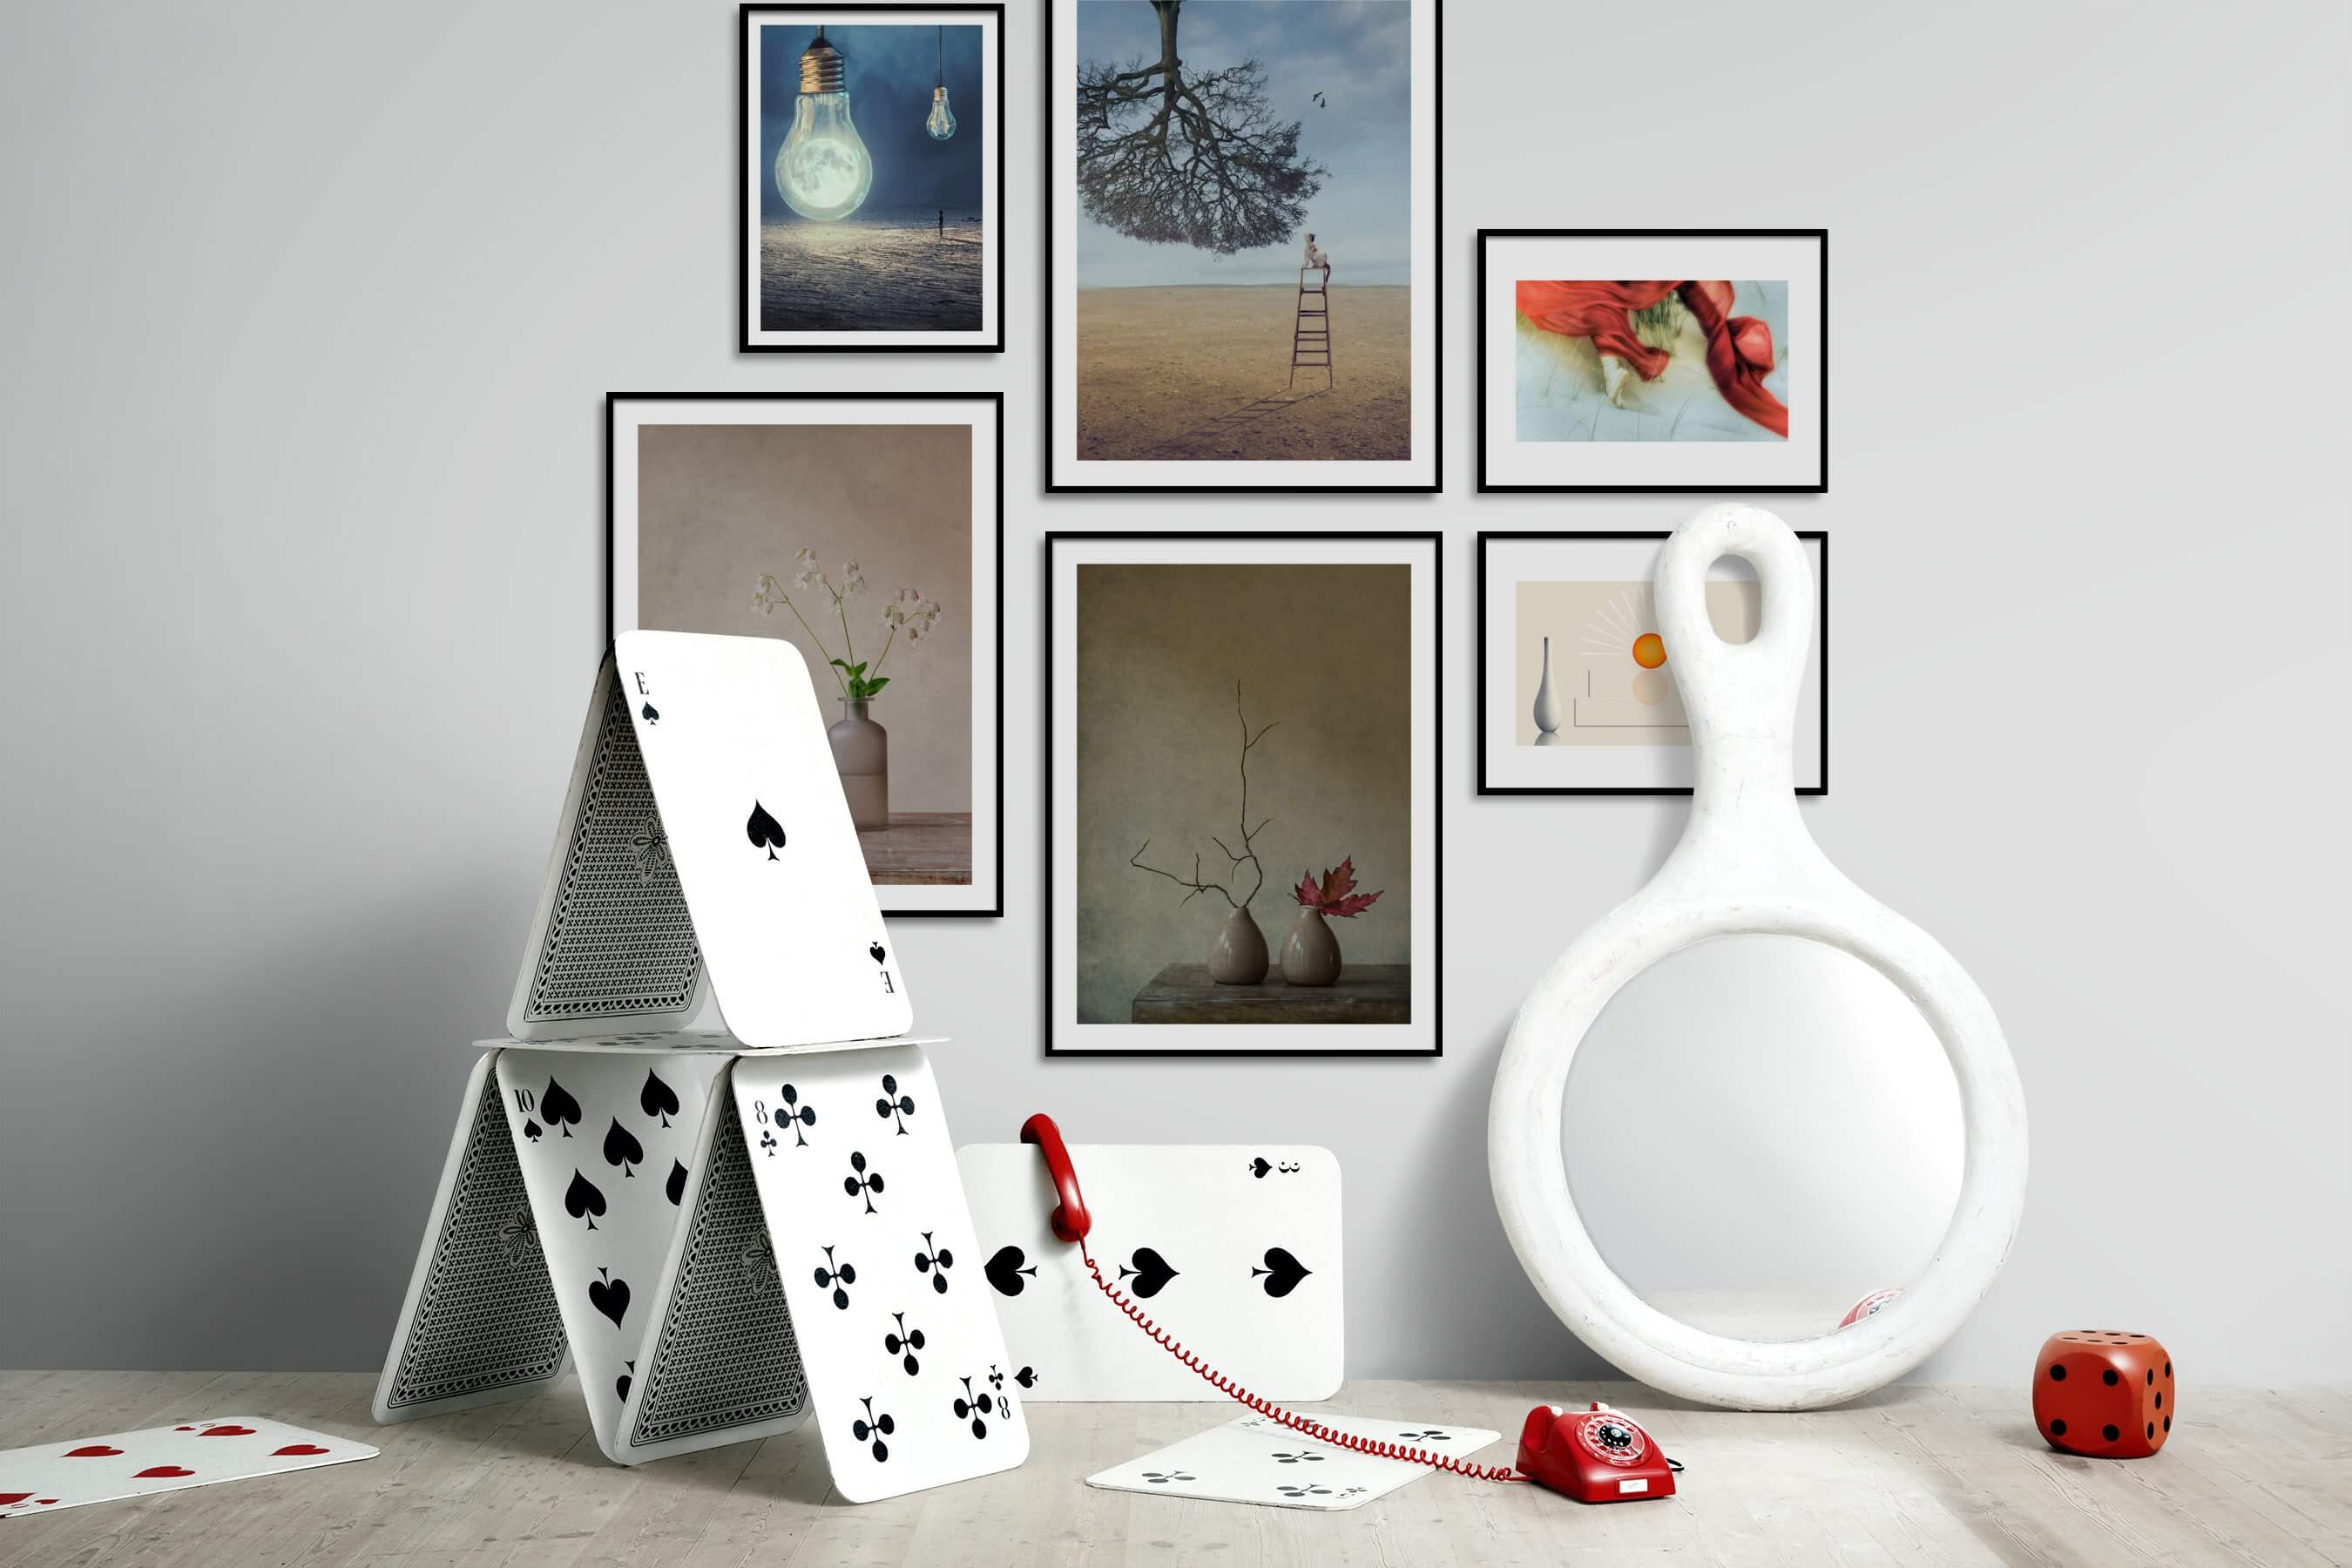 Gallery wall idea with six framed pictures arranged on a wall depicting Artsy, Nature, Animals, Flowers & Plants, Vintage, For the Minimalist, Fashion & Beauty, and For the Moderate